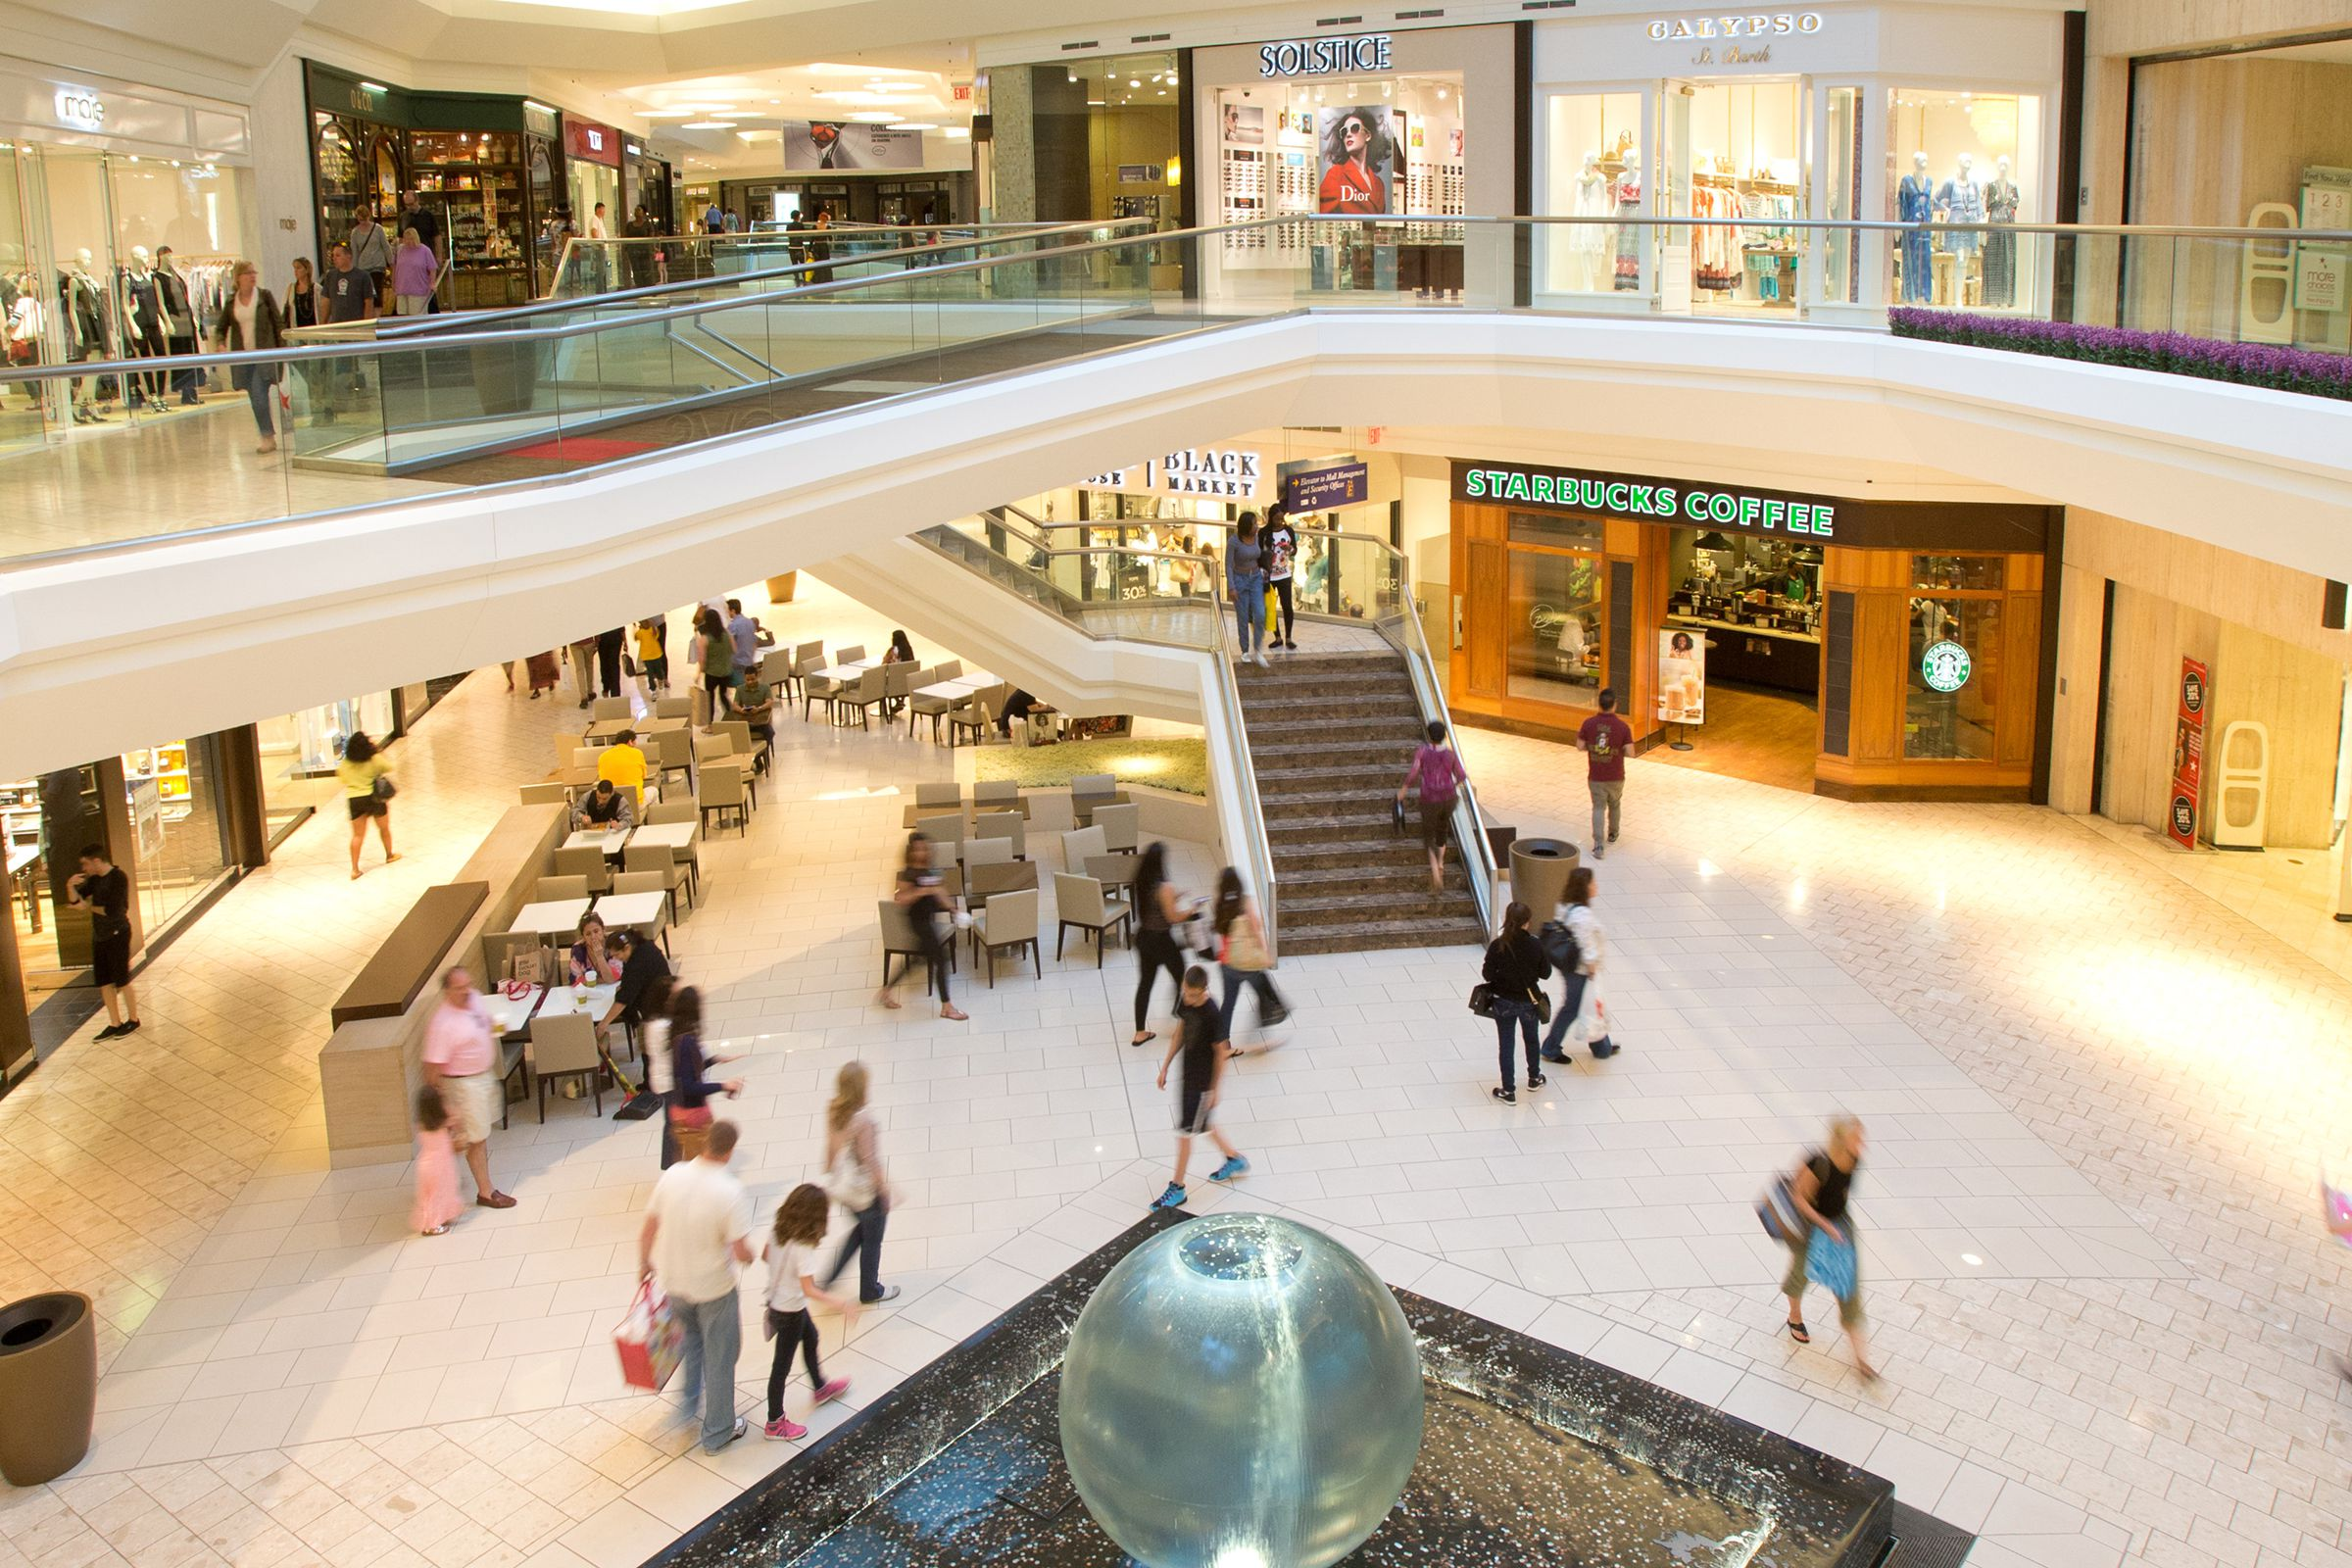 North new jersey shopping mall guide - 1 garden state plaza paramus nj 07652 ...